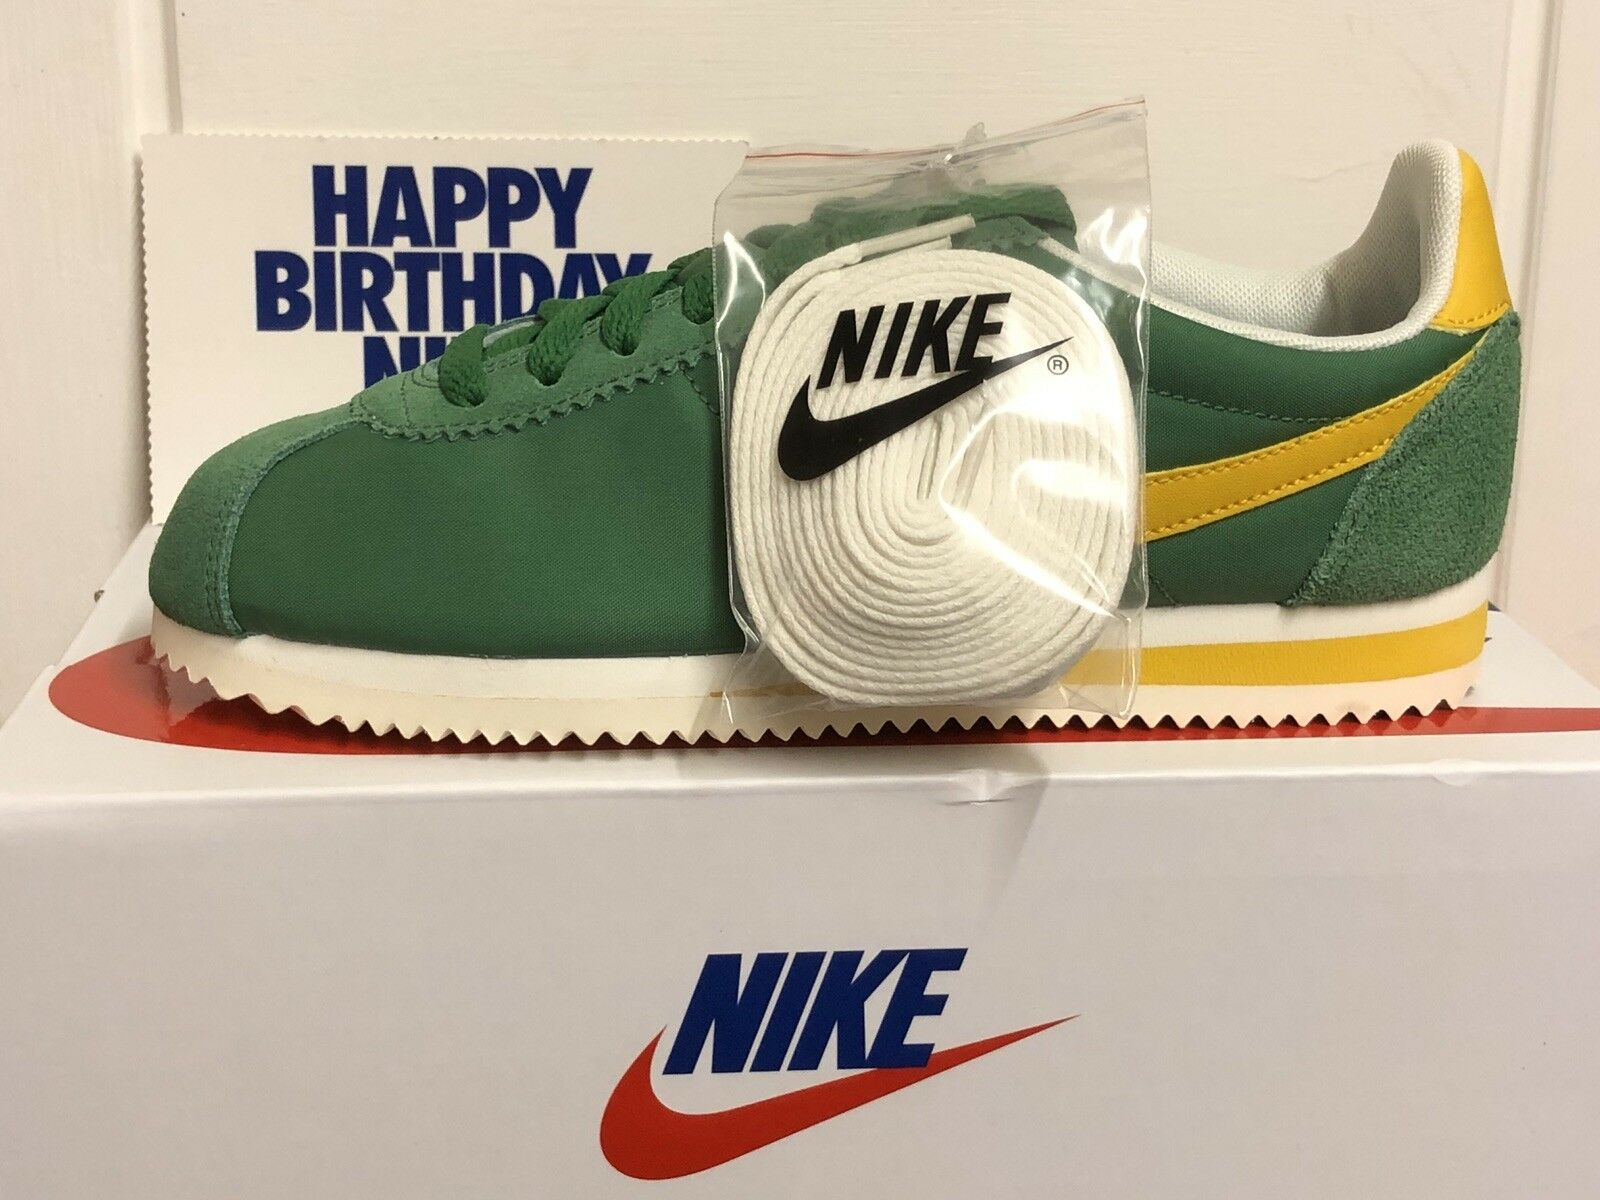 NIKE CLASSIC CORTEZ NYLON PREM TRAINERS SNEAKERS SHOES US 7,5